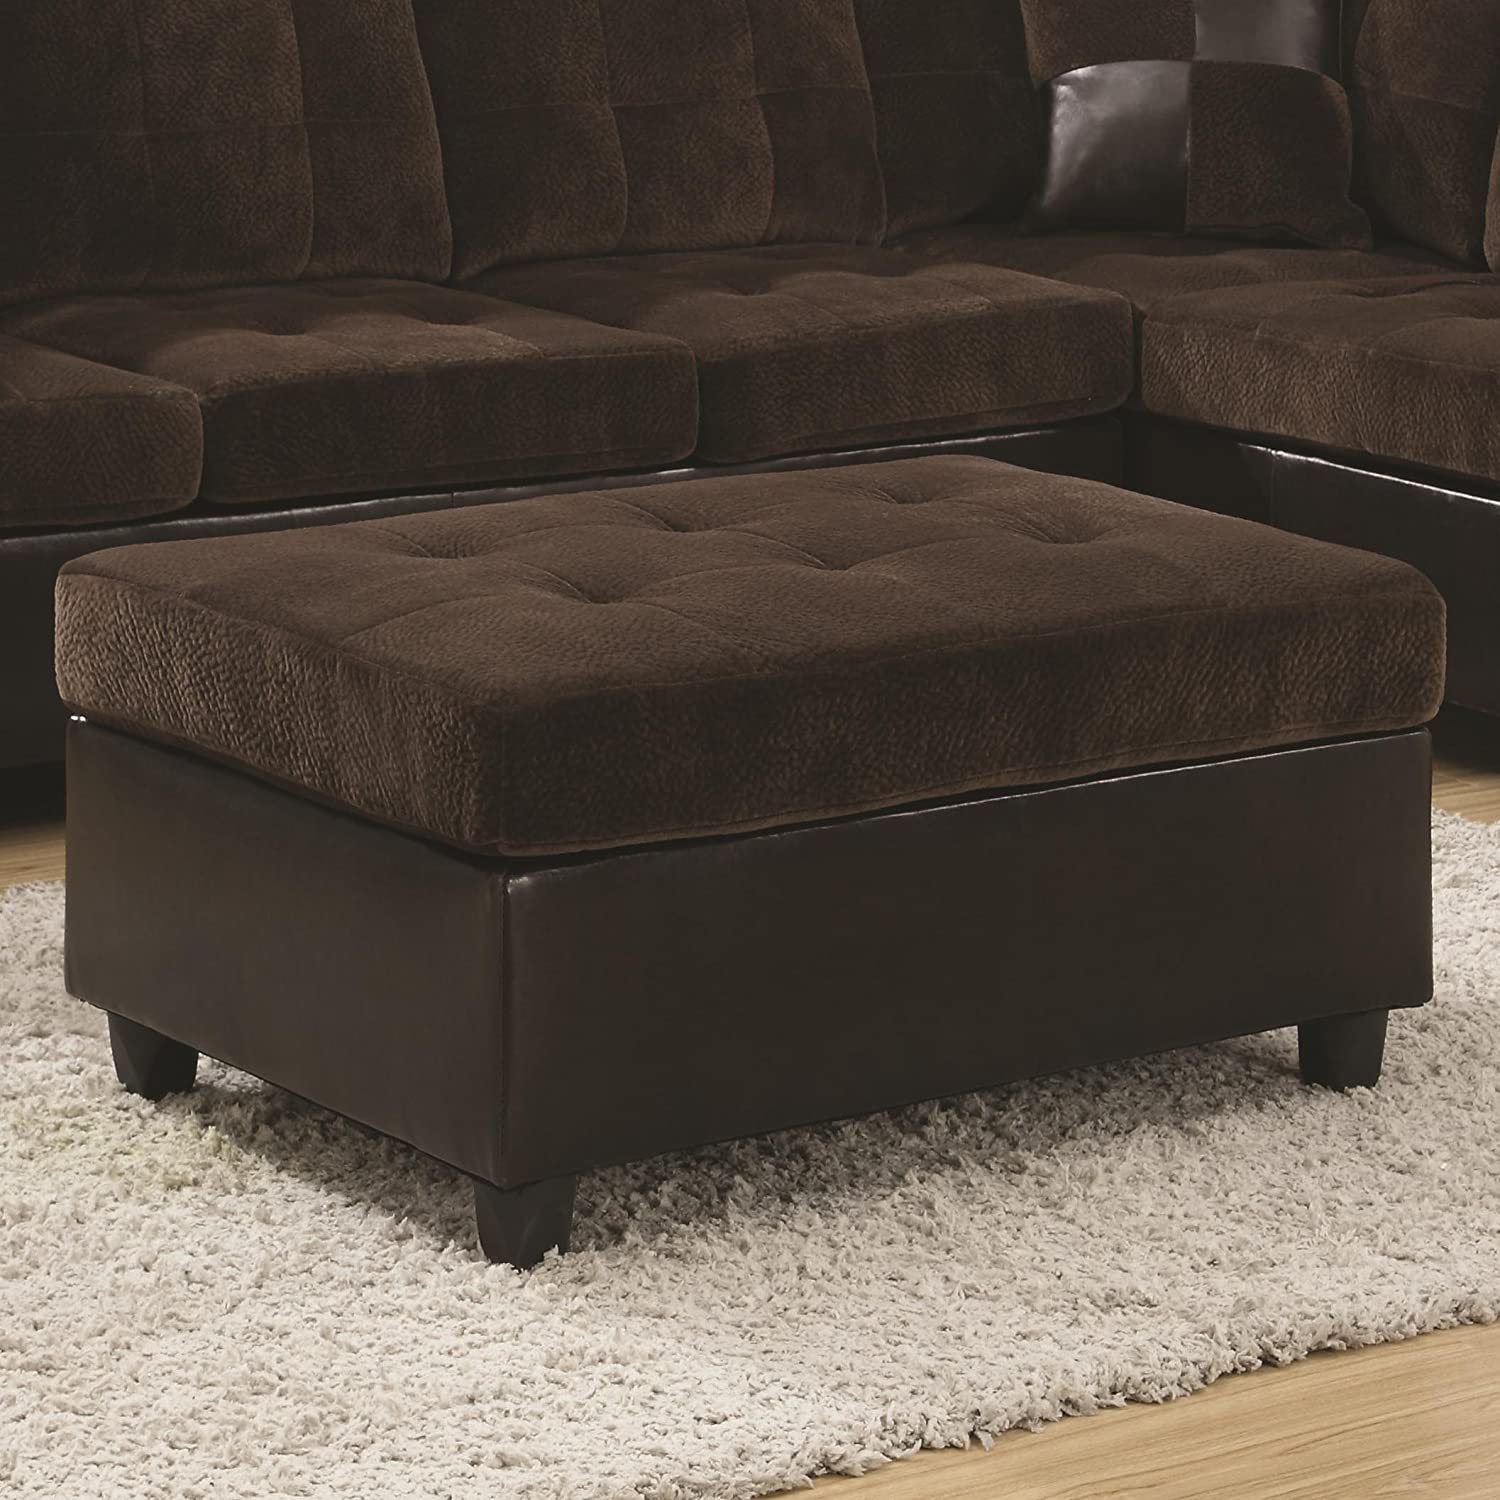 Coaster Home Furnishings 505646 Casual Ottoman, Brown